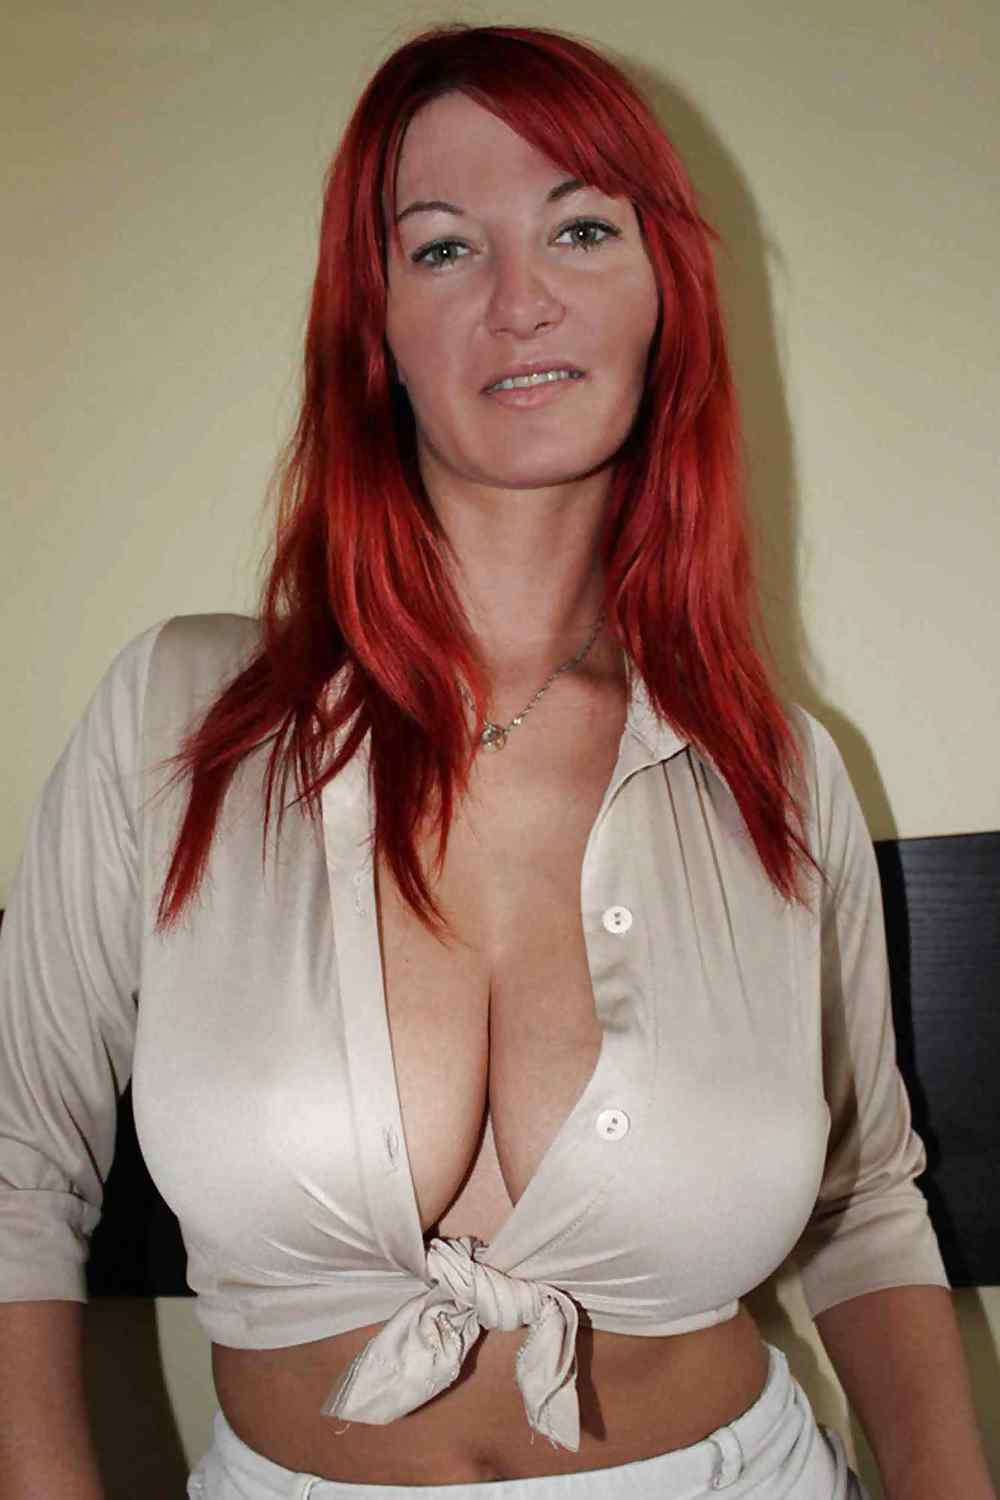 Red Head MILF With Big Tits And Ass by DarKKo Porn Pics #15300547